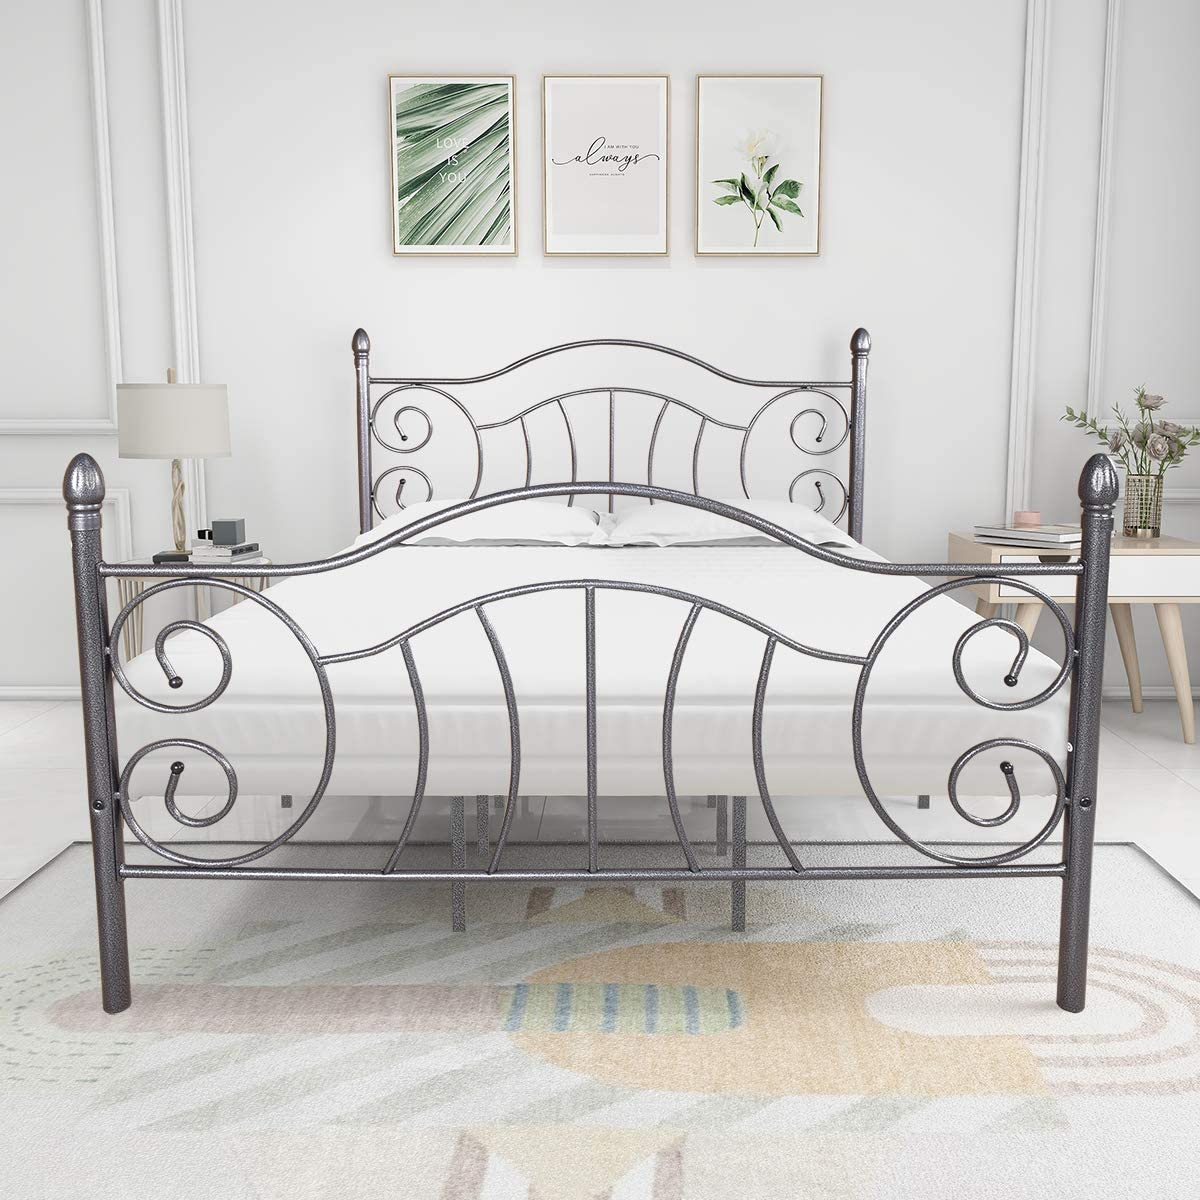 Elegant Home Products Metal Bed Frame Victorian Vintage Style Platform Foundation Headboard Footboard Heavy Duty Steel Slabs Textueenured Charcoal Finish (Gray Silver, Queen)